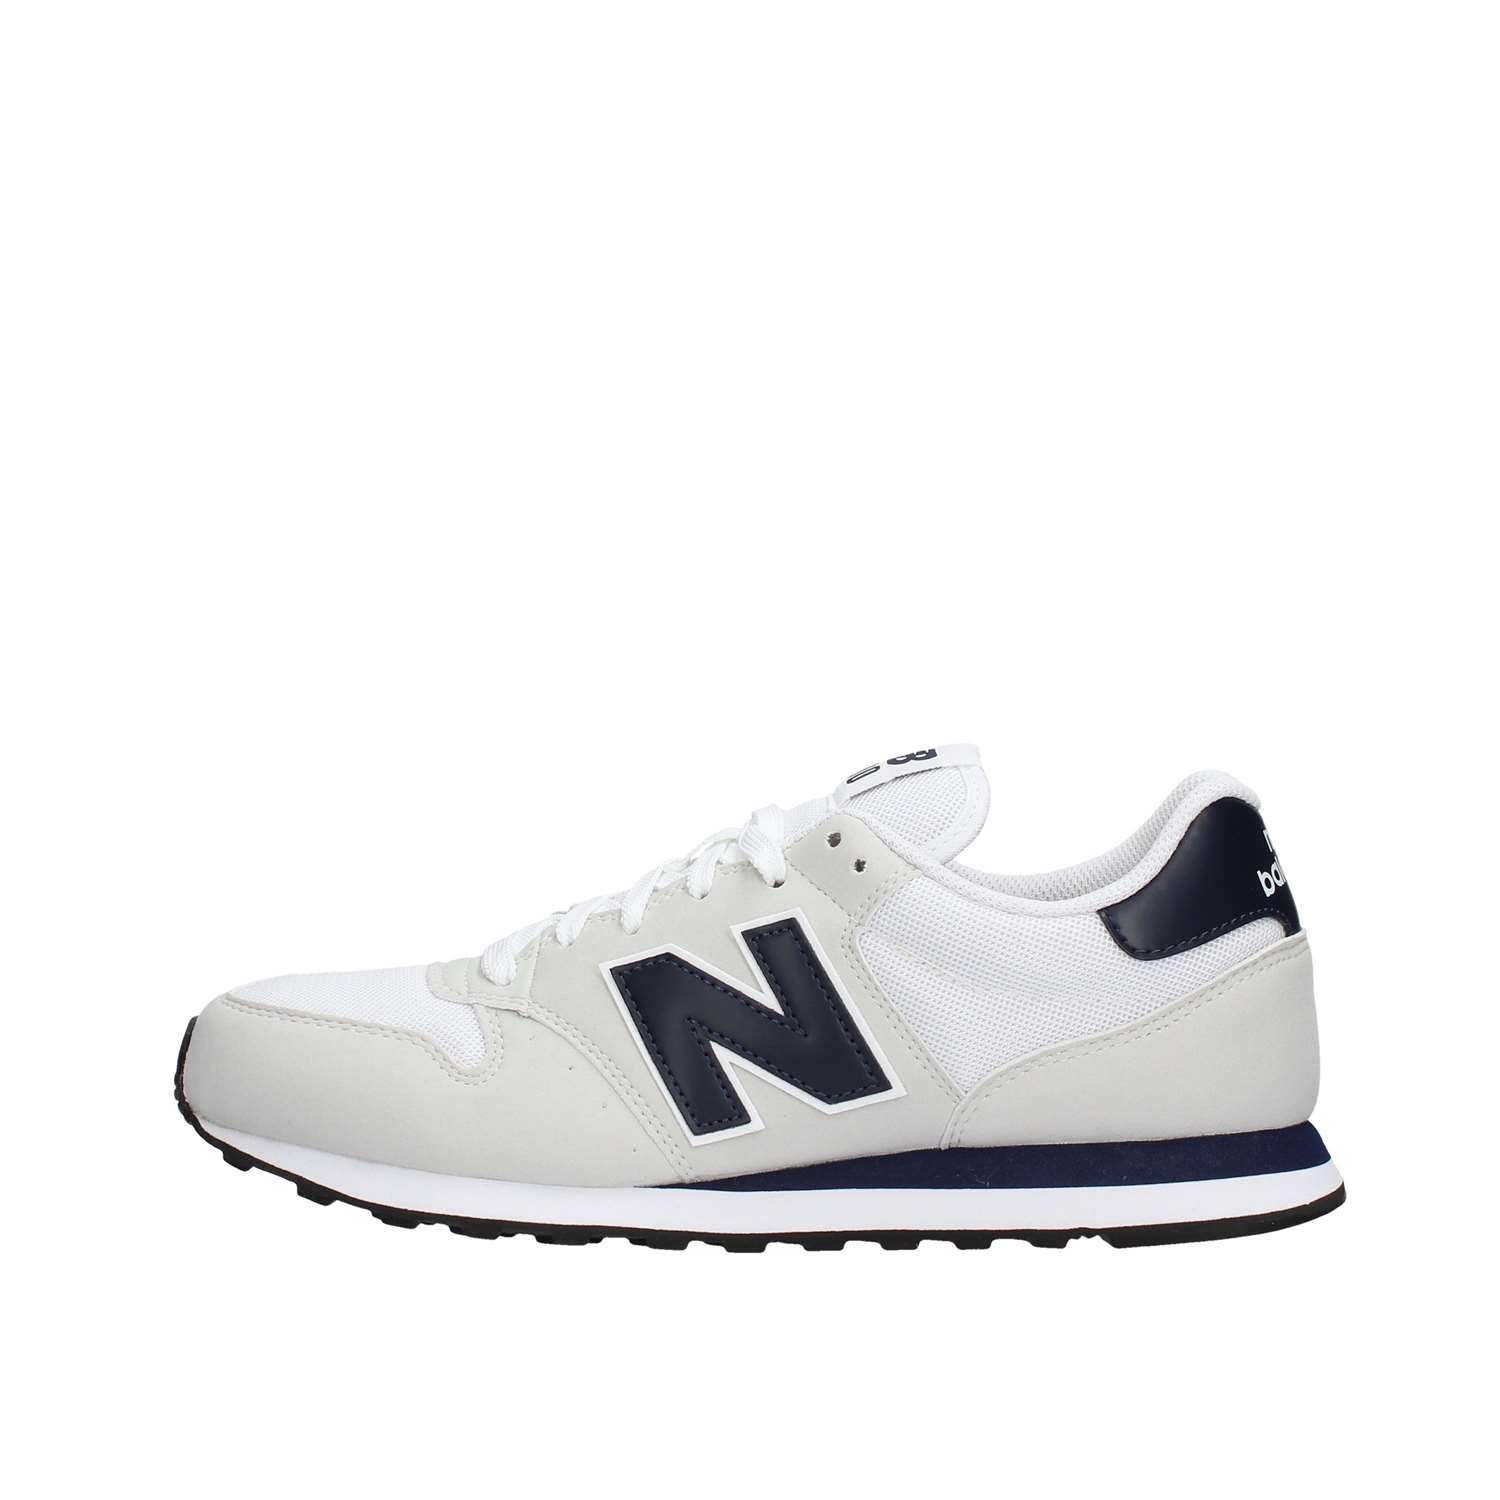 NEW BALANCE Sneakers uomo uomo blu/bianco SxsMJ37Do